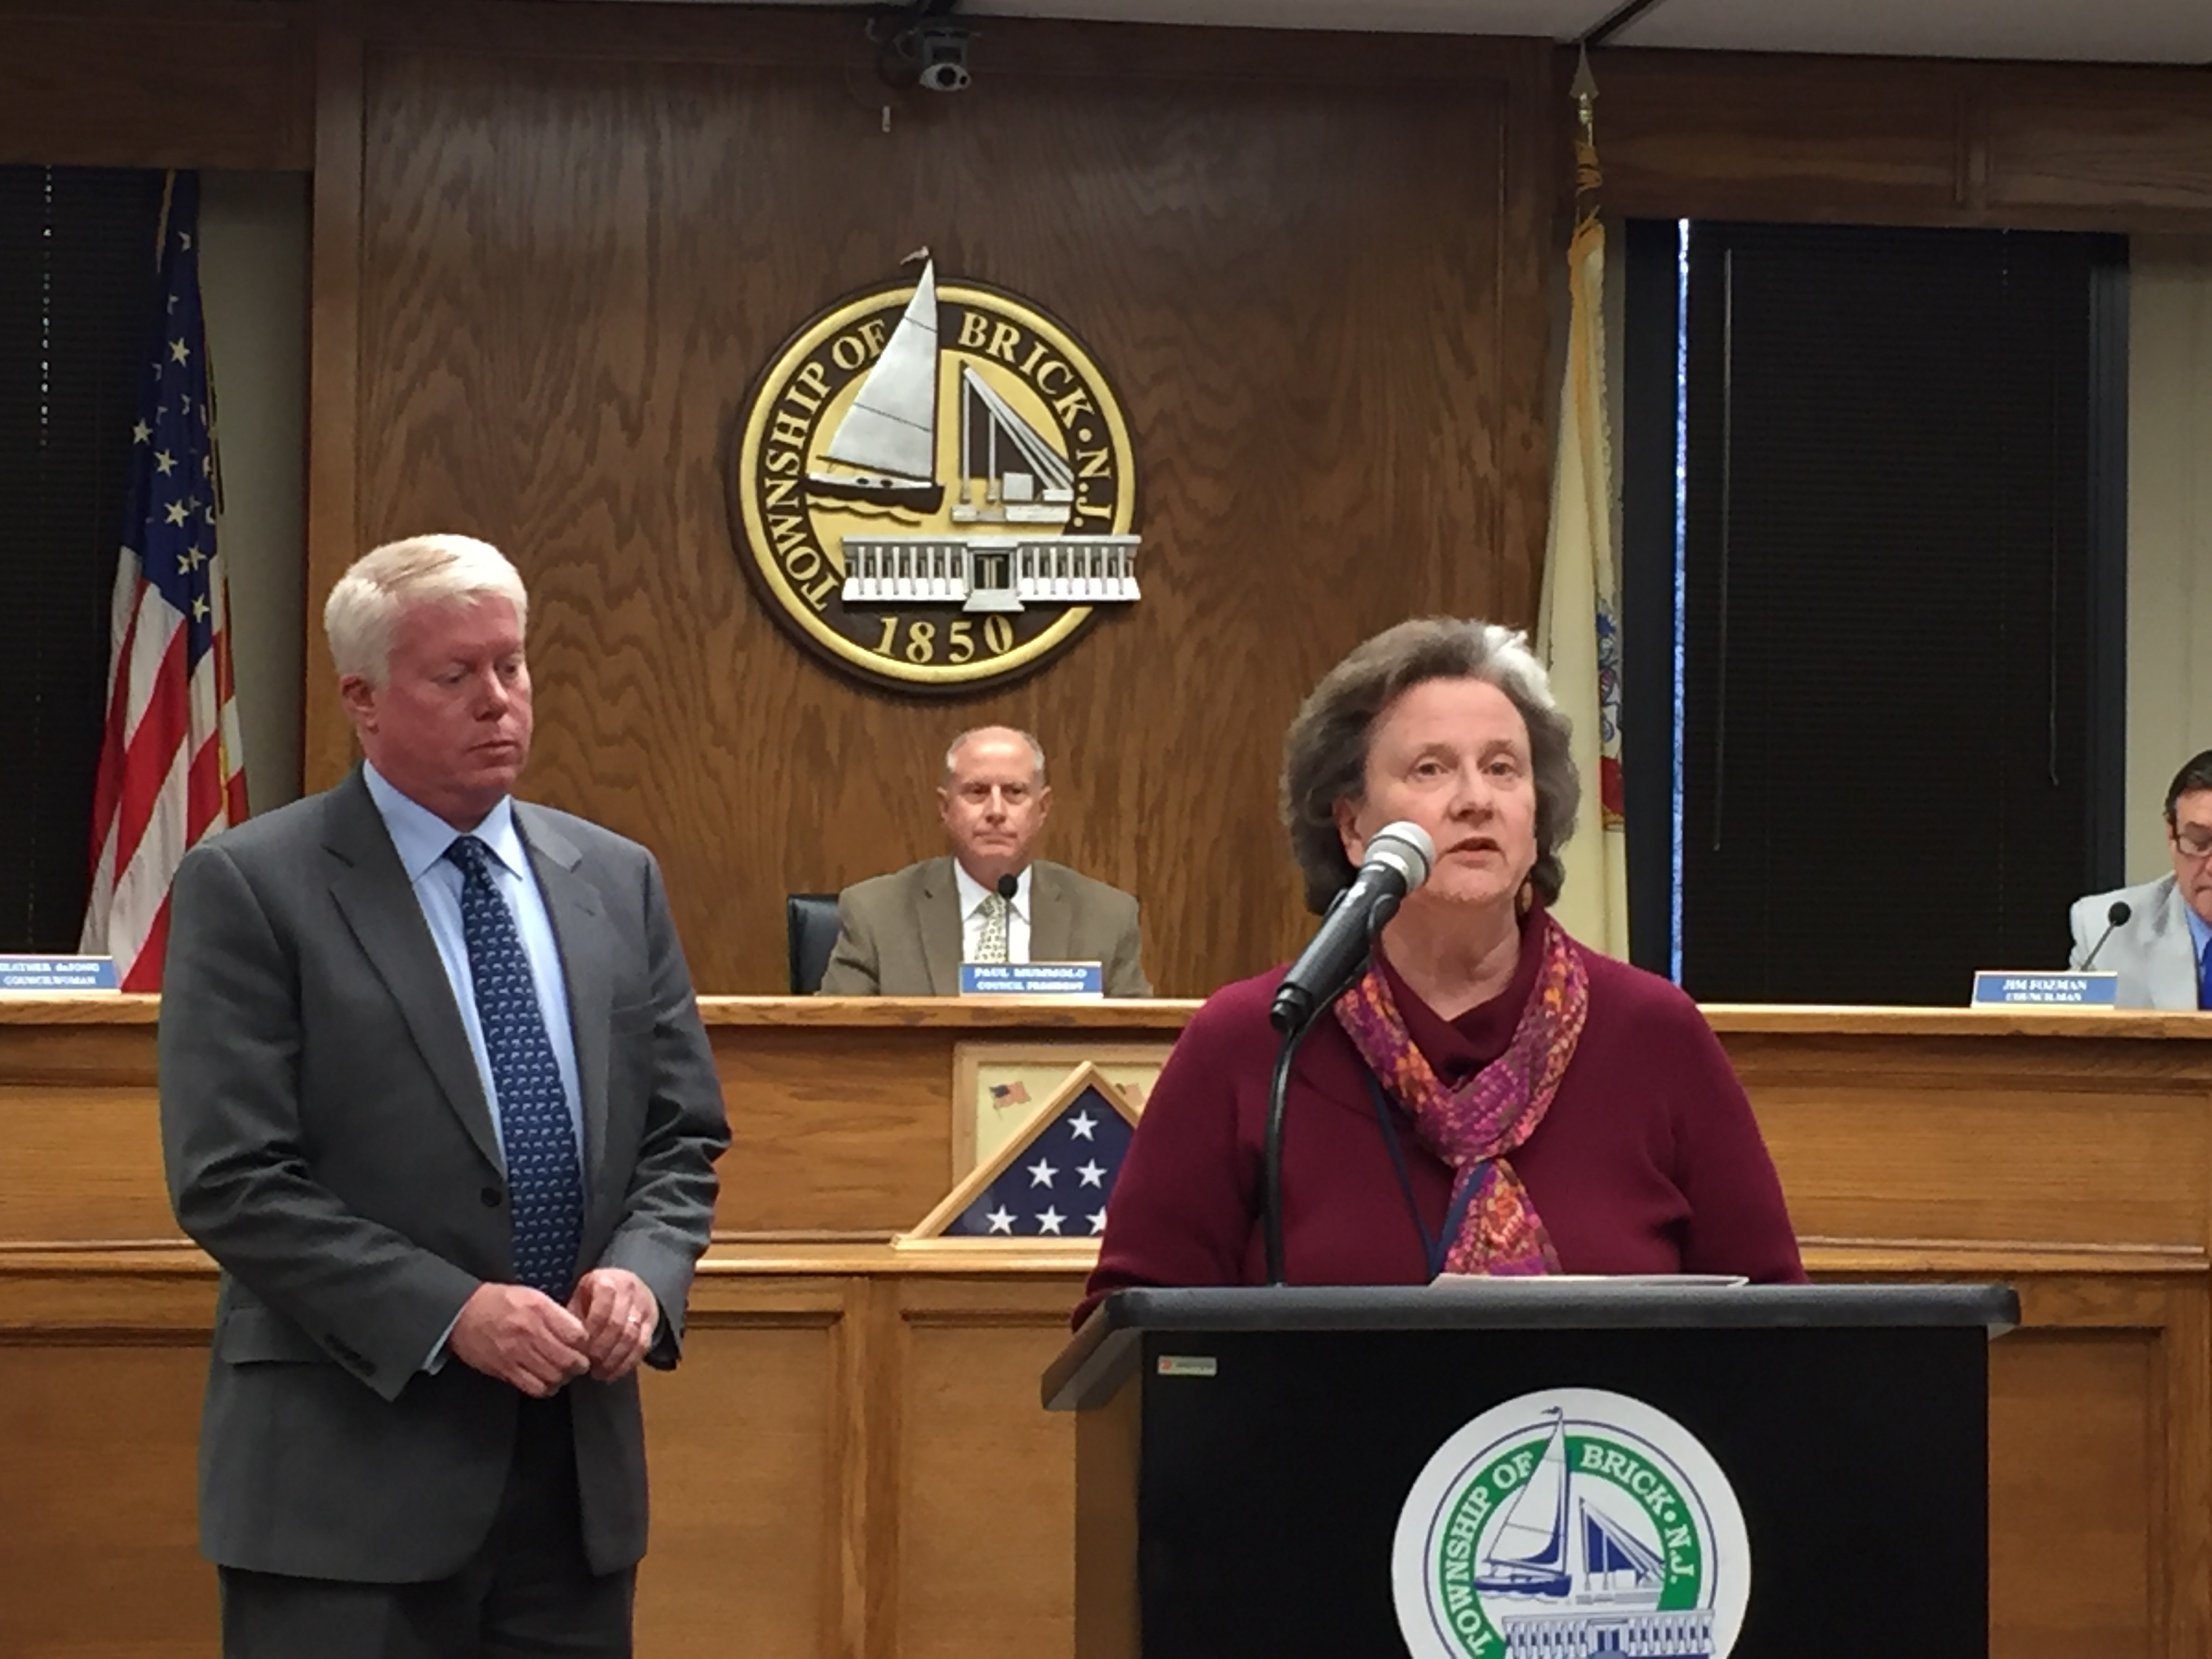 Brick Library Branch Manager Susan Gardiner, speaking at the April 5, 2016 Brick Township council meeting. (Photo: Daniel Nee)